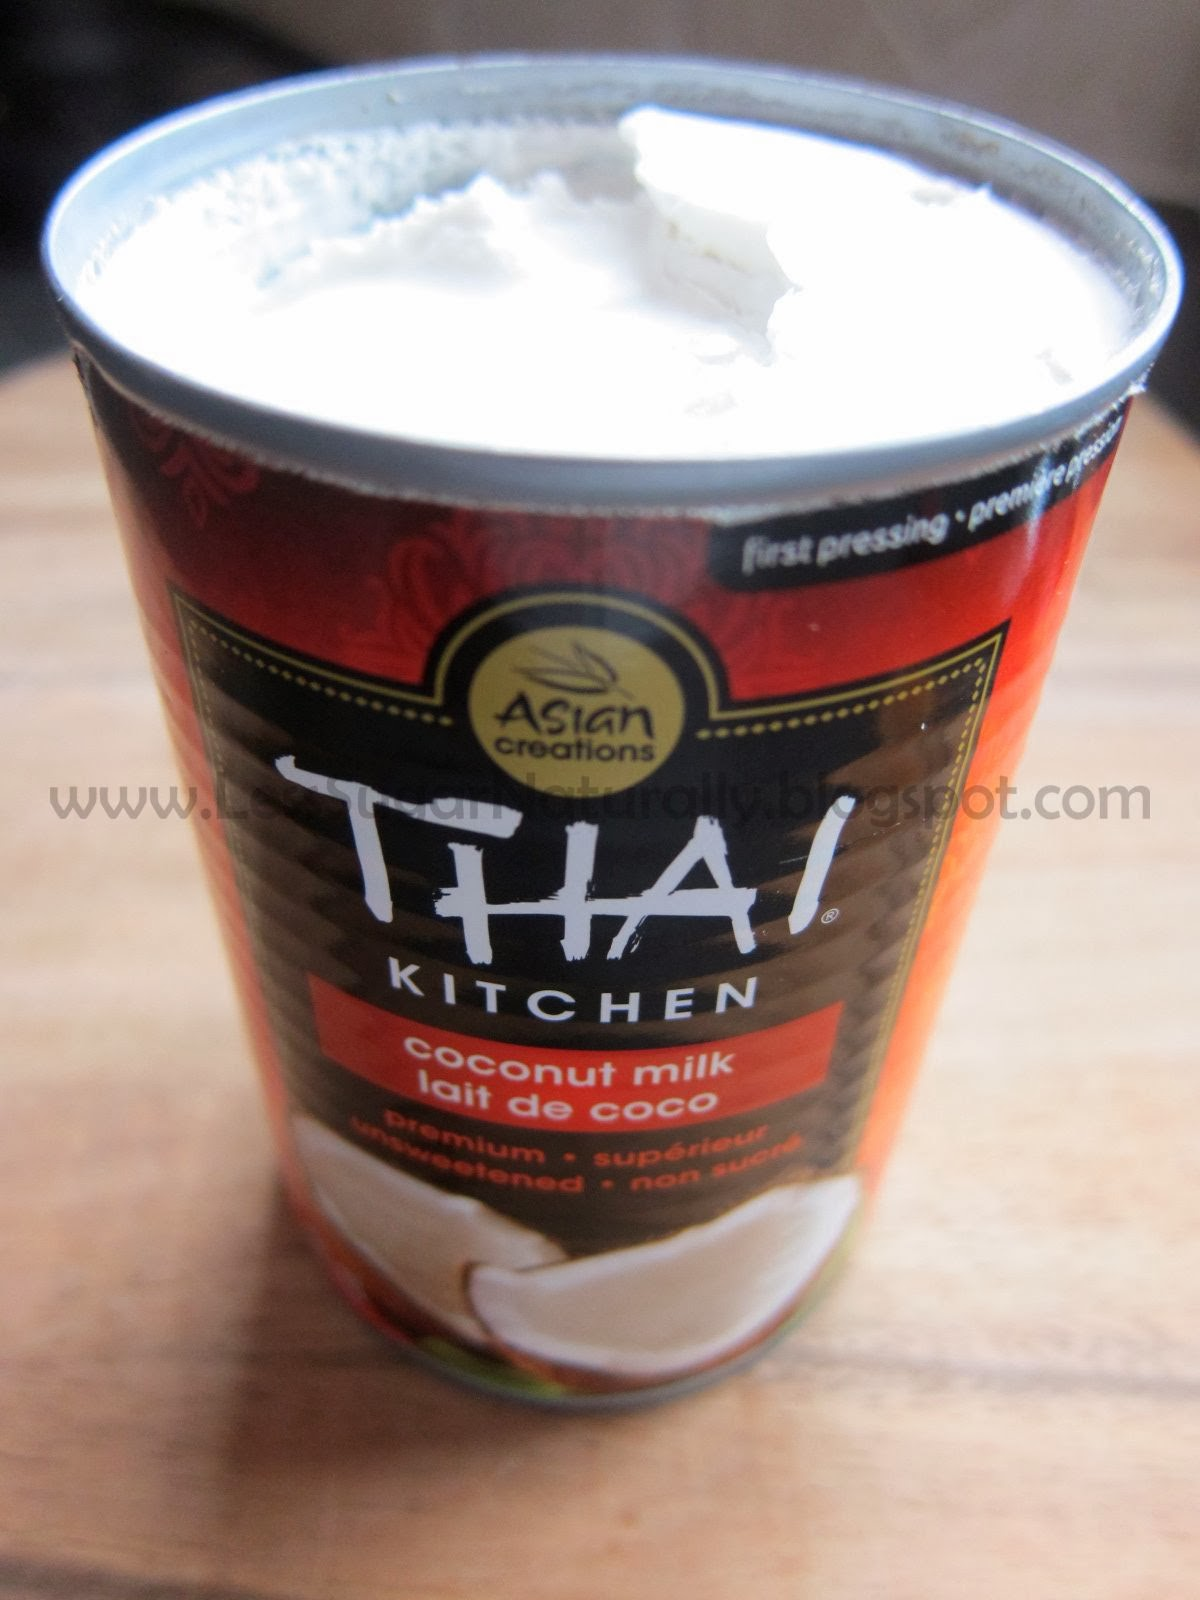 thai kitchen organic coconut milk pull out shelves for cabinets less sugar naturally dairy free butter chicken